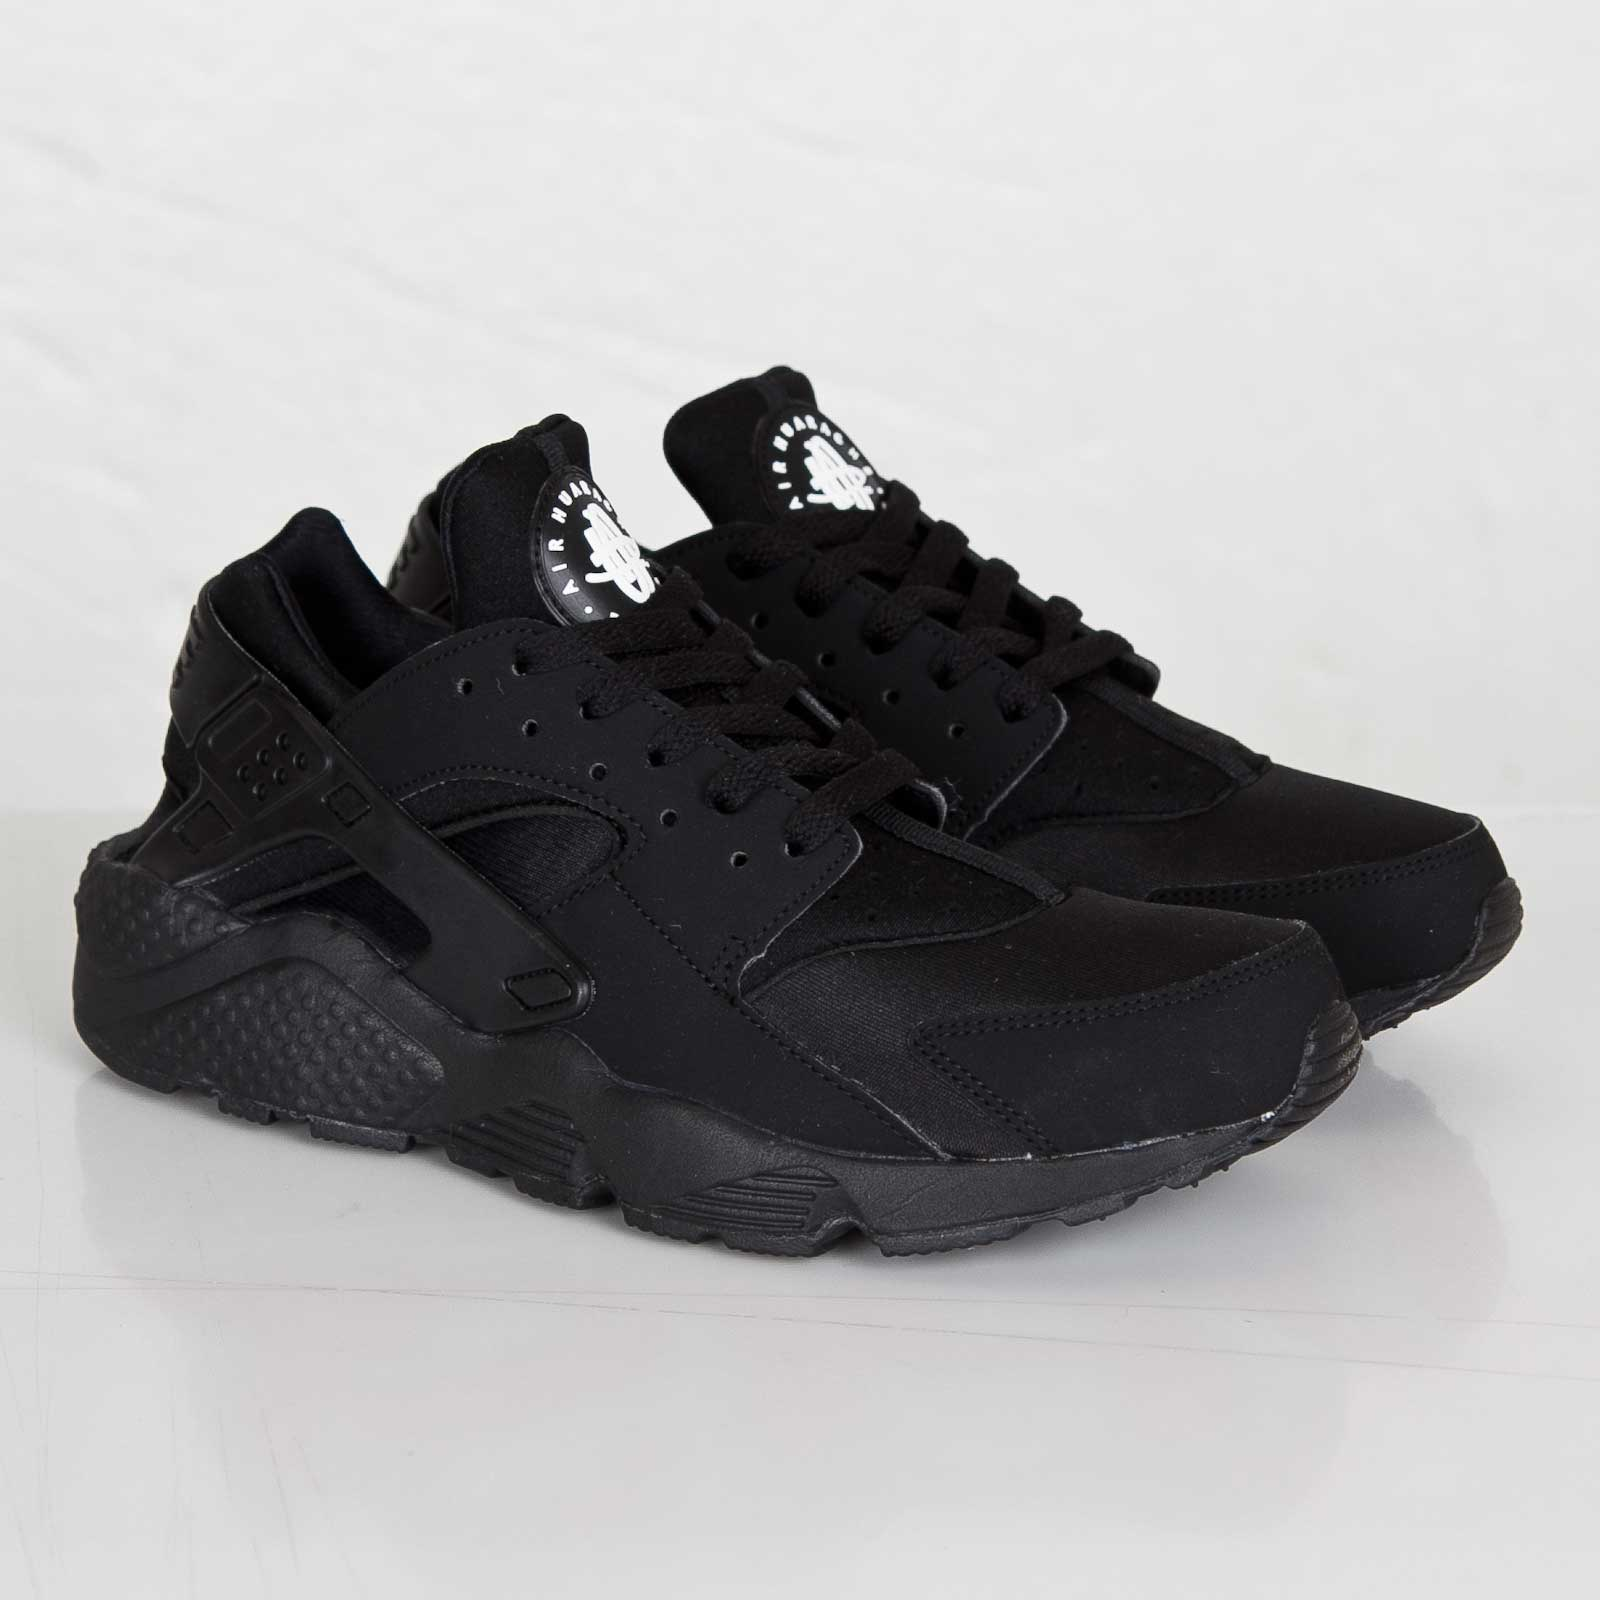 Nike Air Huarache - 318429-003 - Sneakersnstuff   sneakers ... be10a852865e